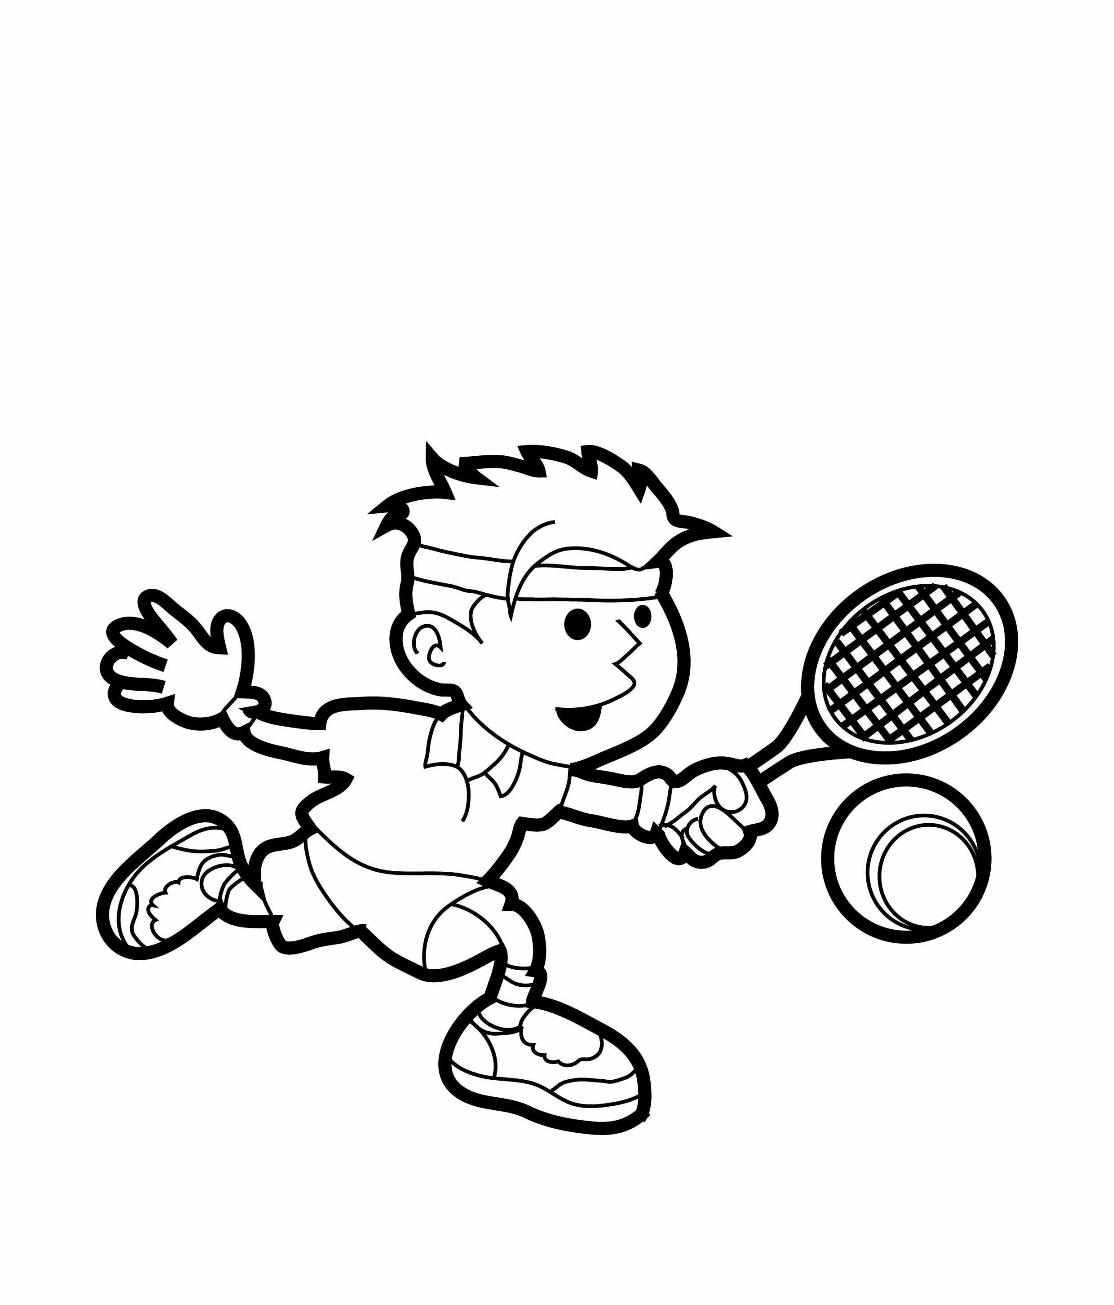 Tennis Coloring Pages for childrens